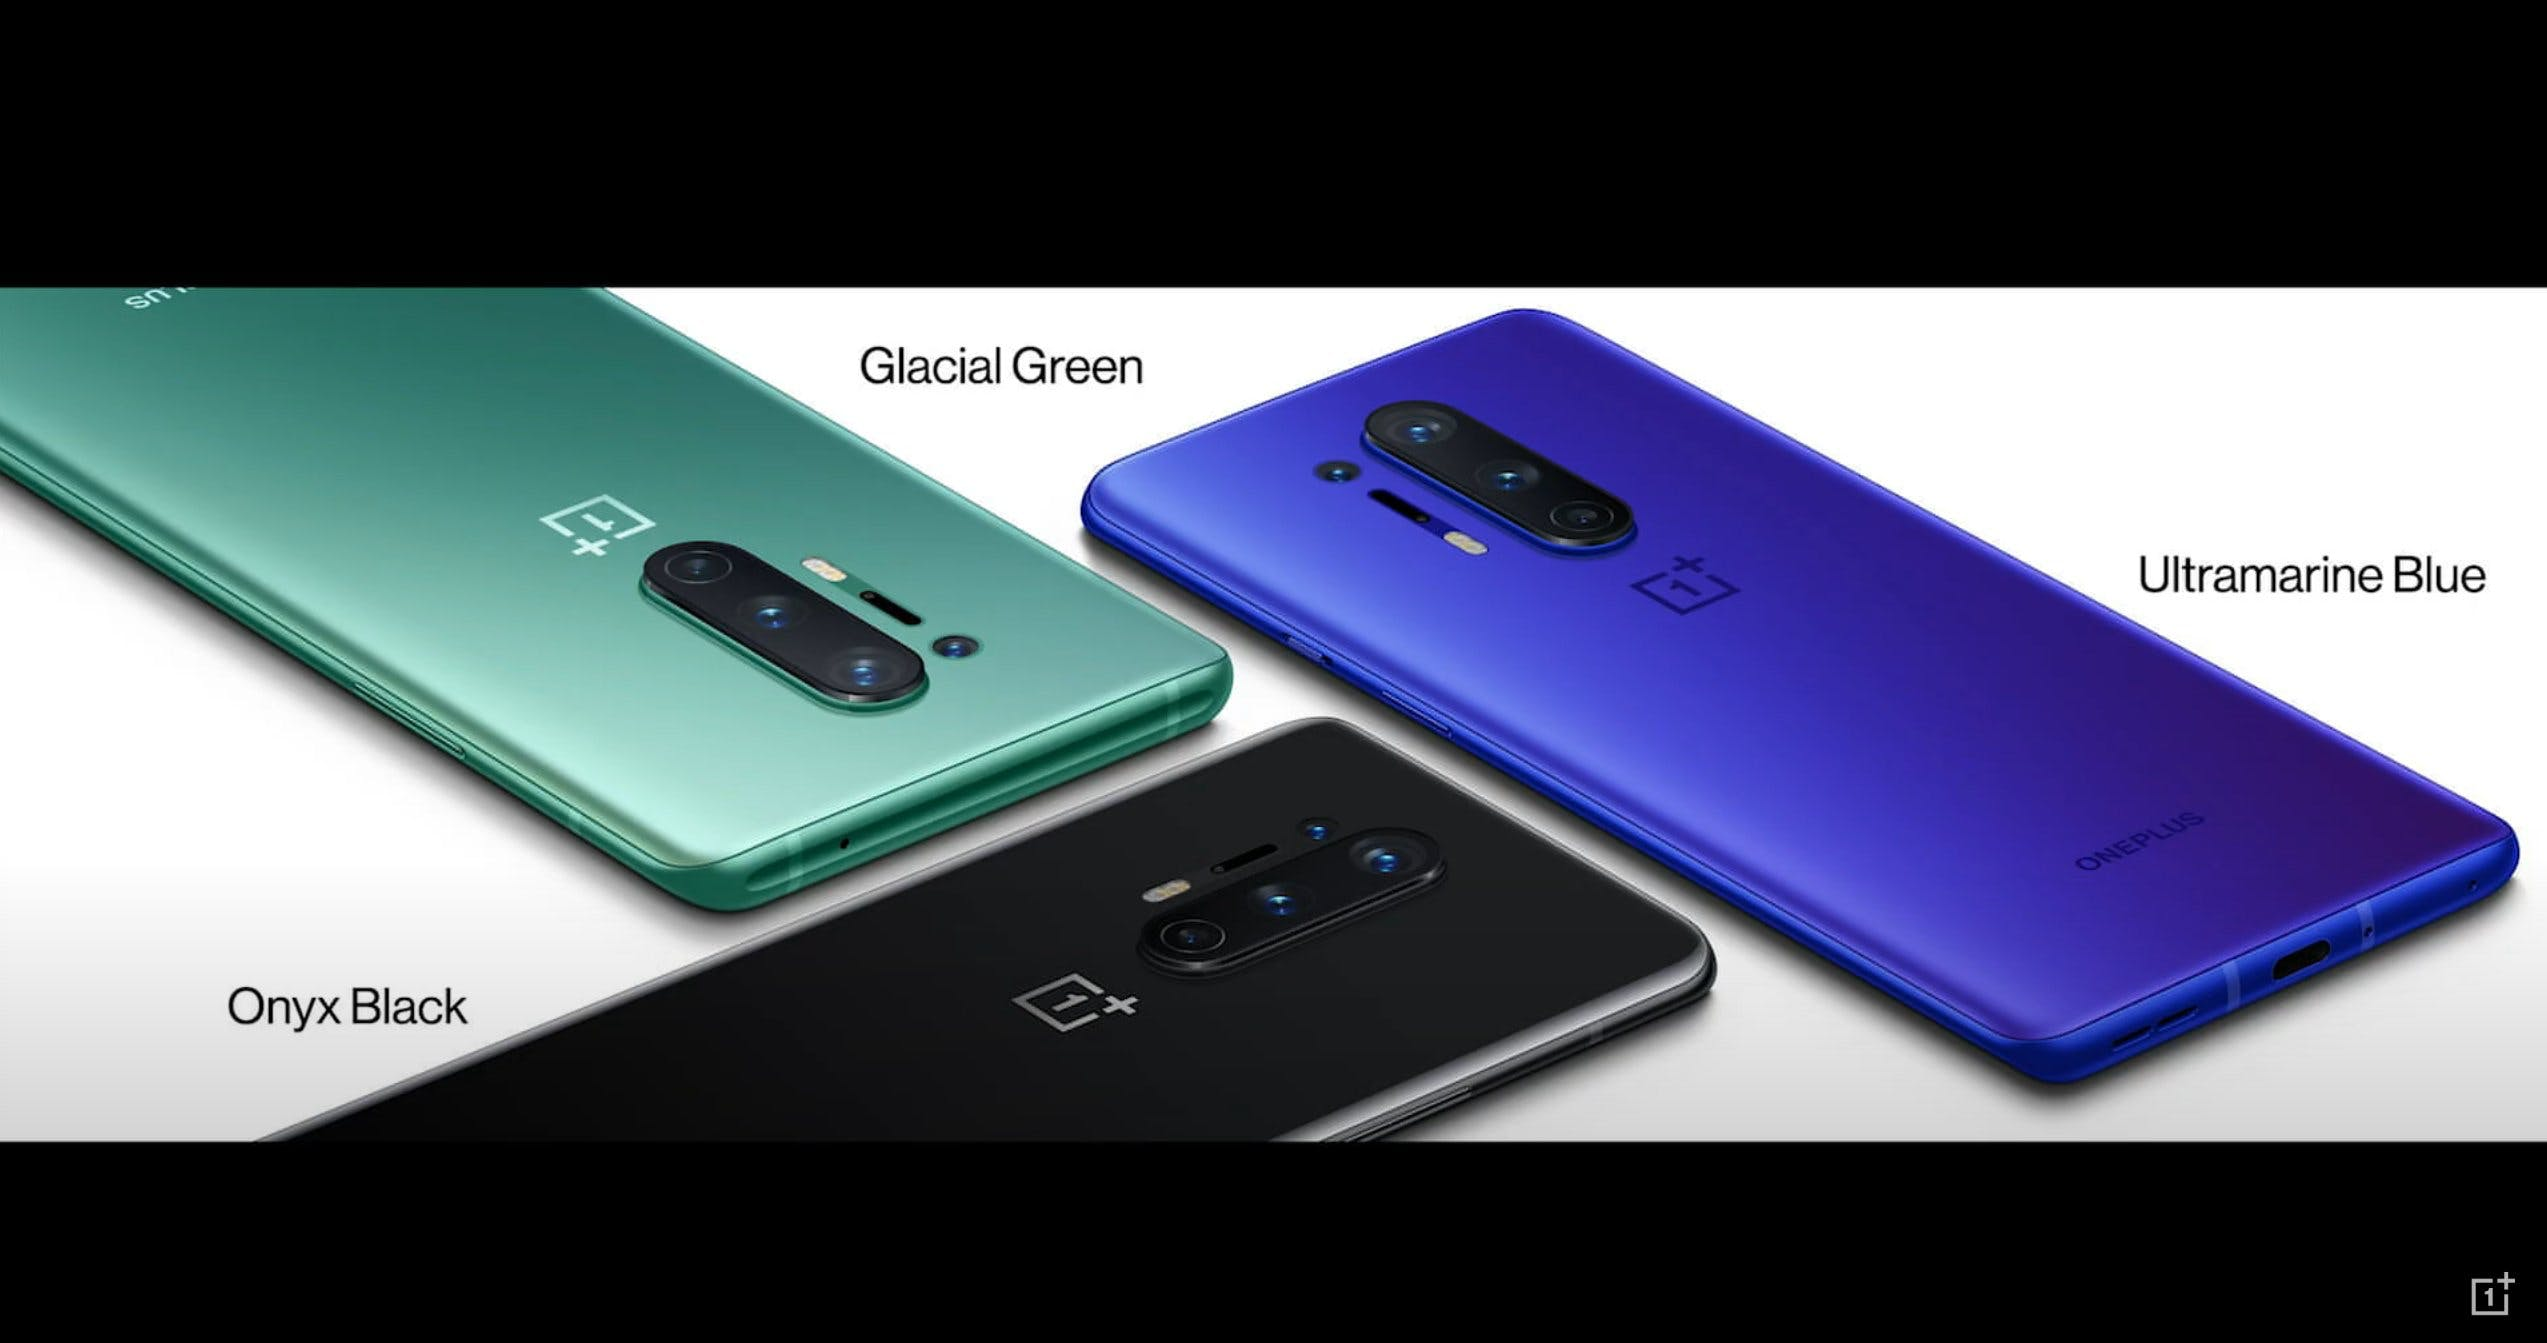 The OnePlus 8 Pro Has Made its Way Into the Flagship Space